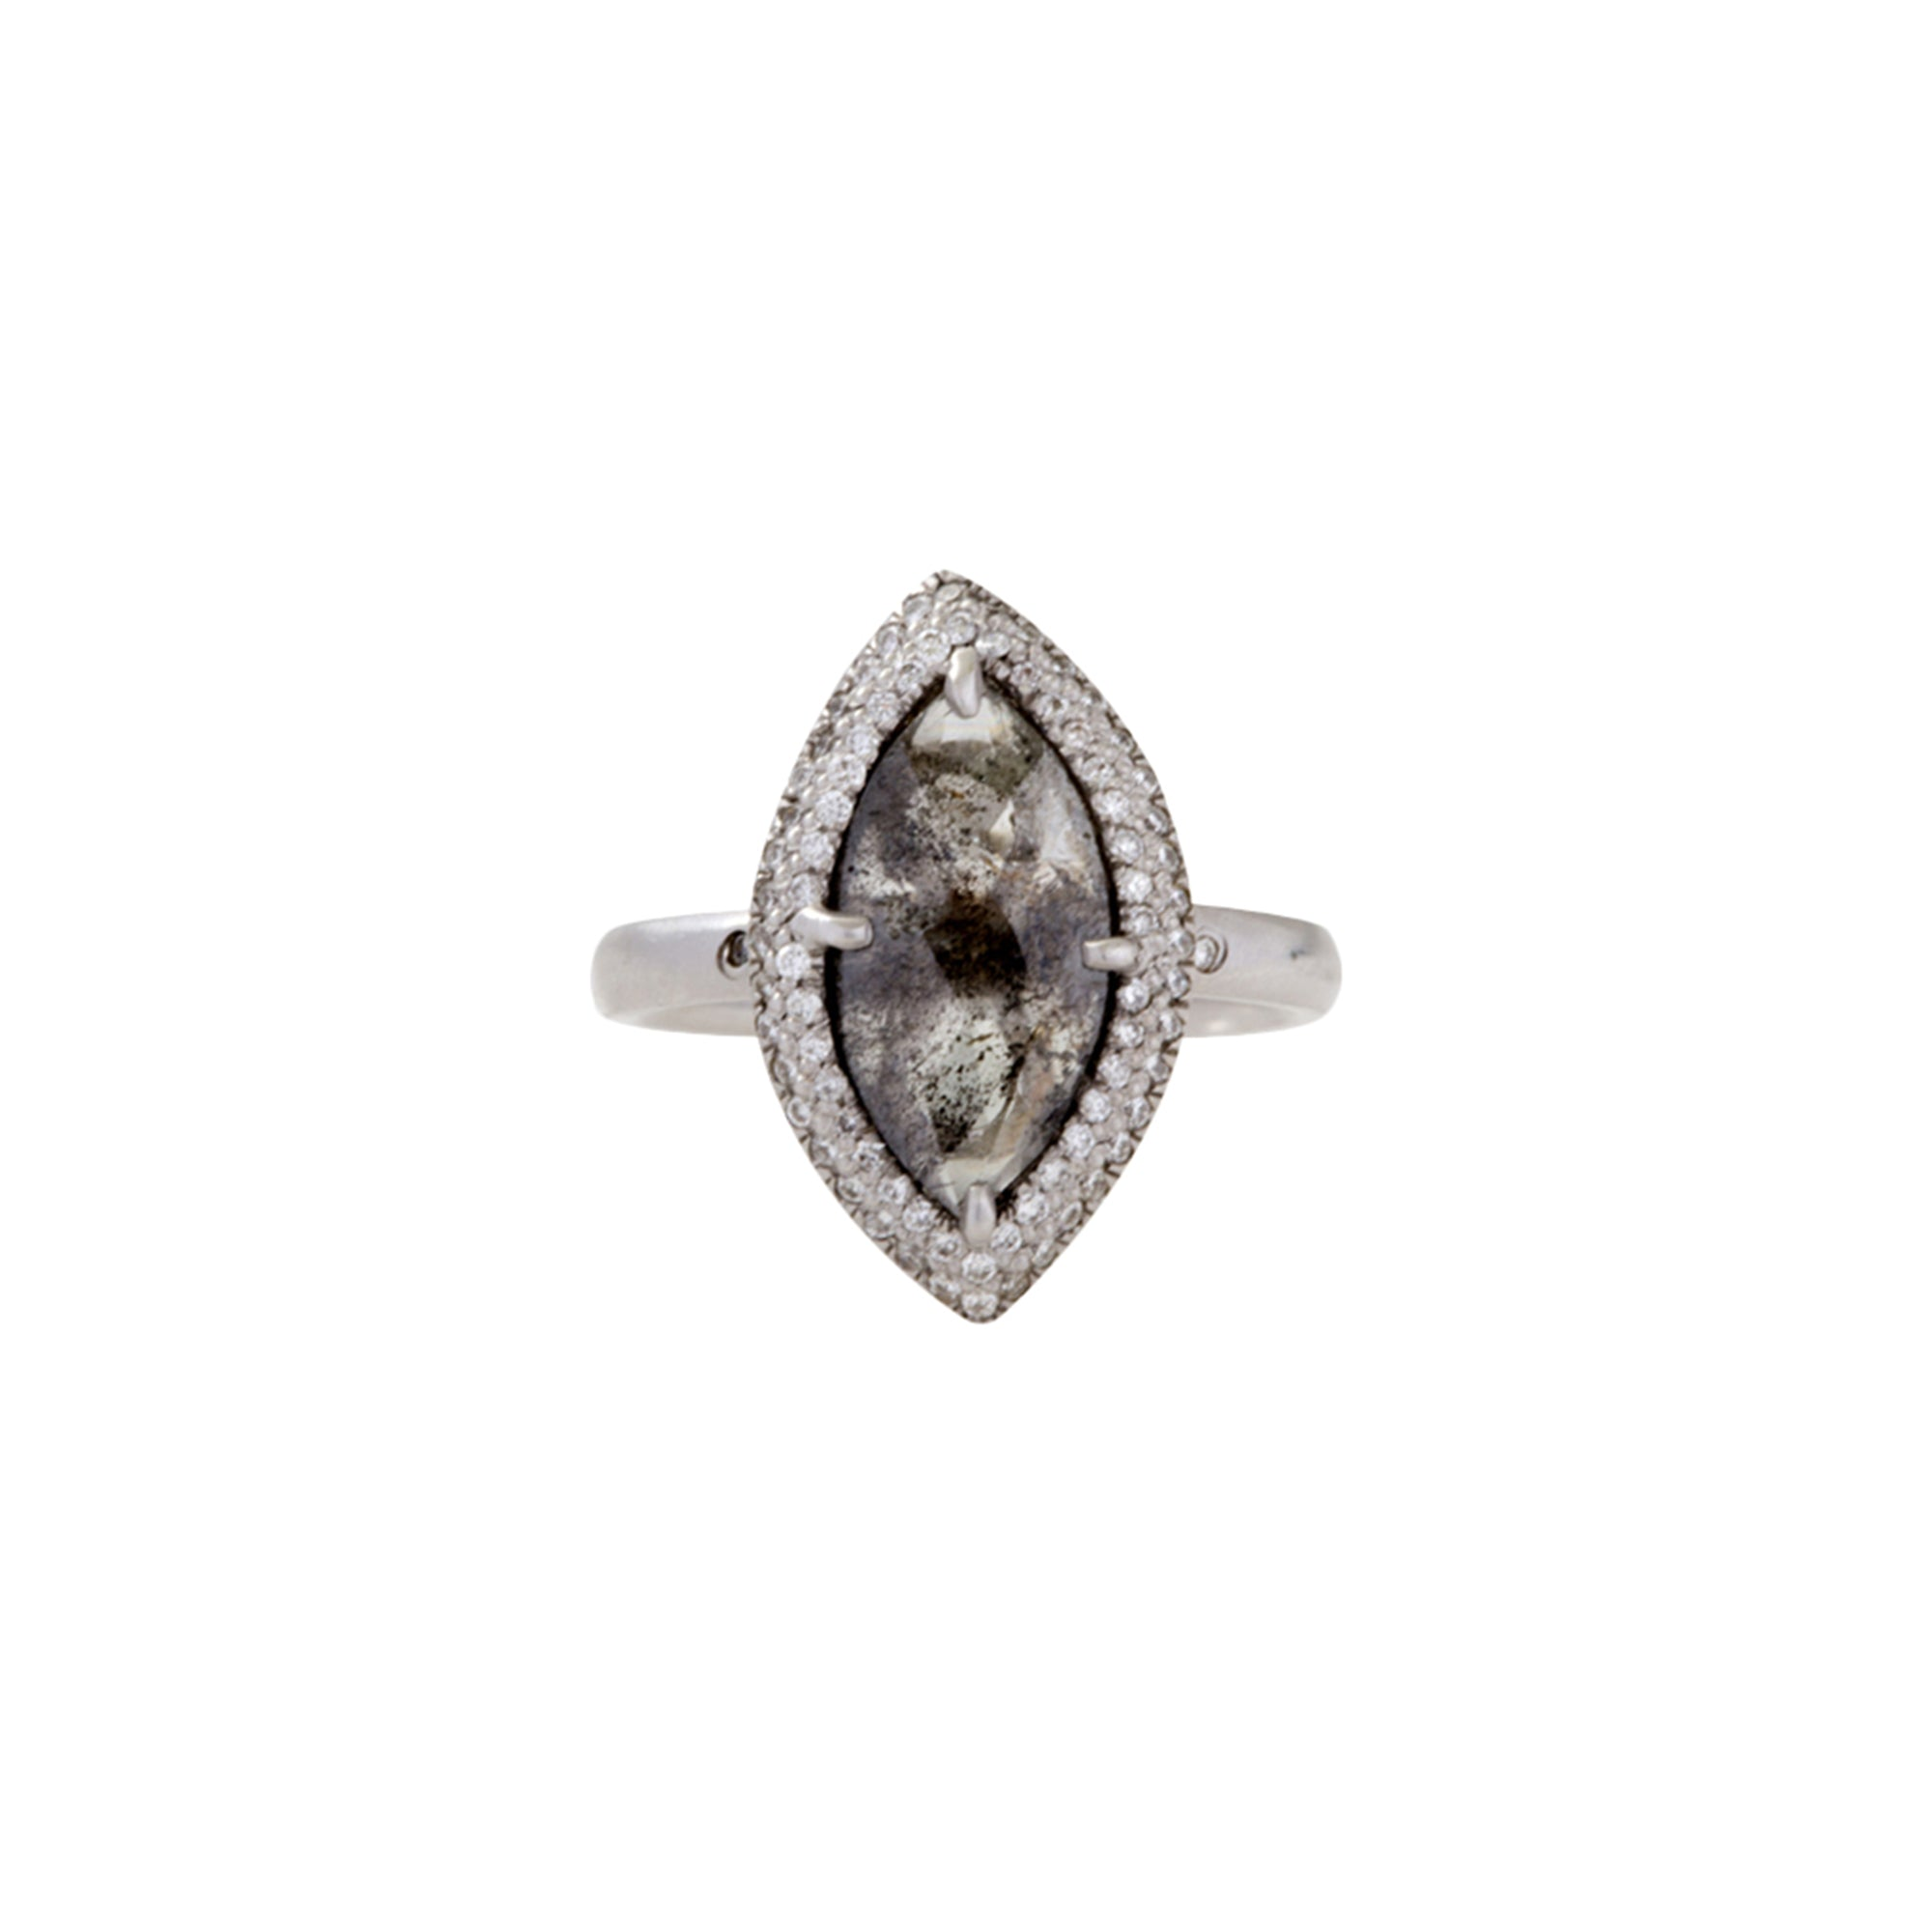 Marquis Diamond Slice Ring